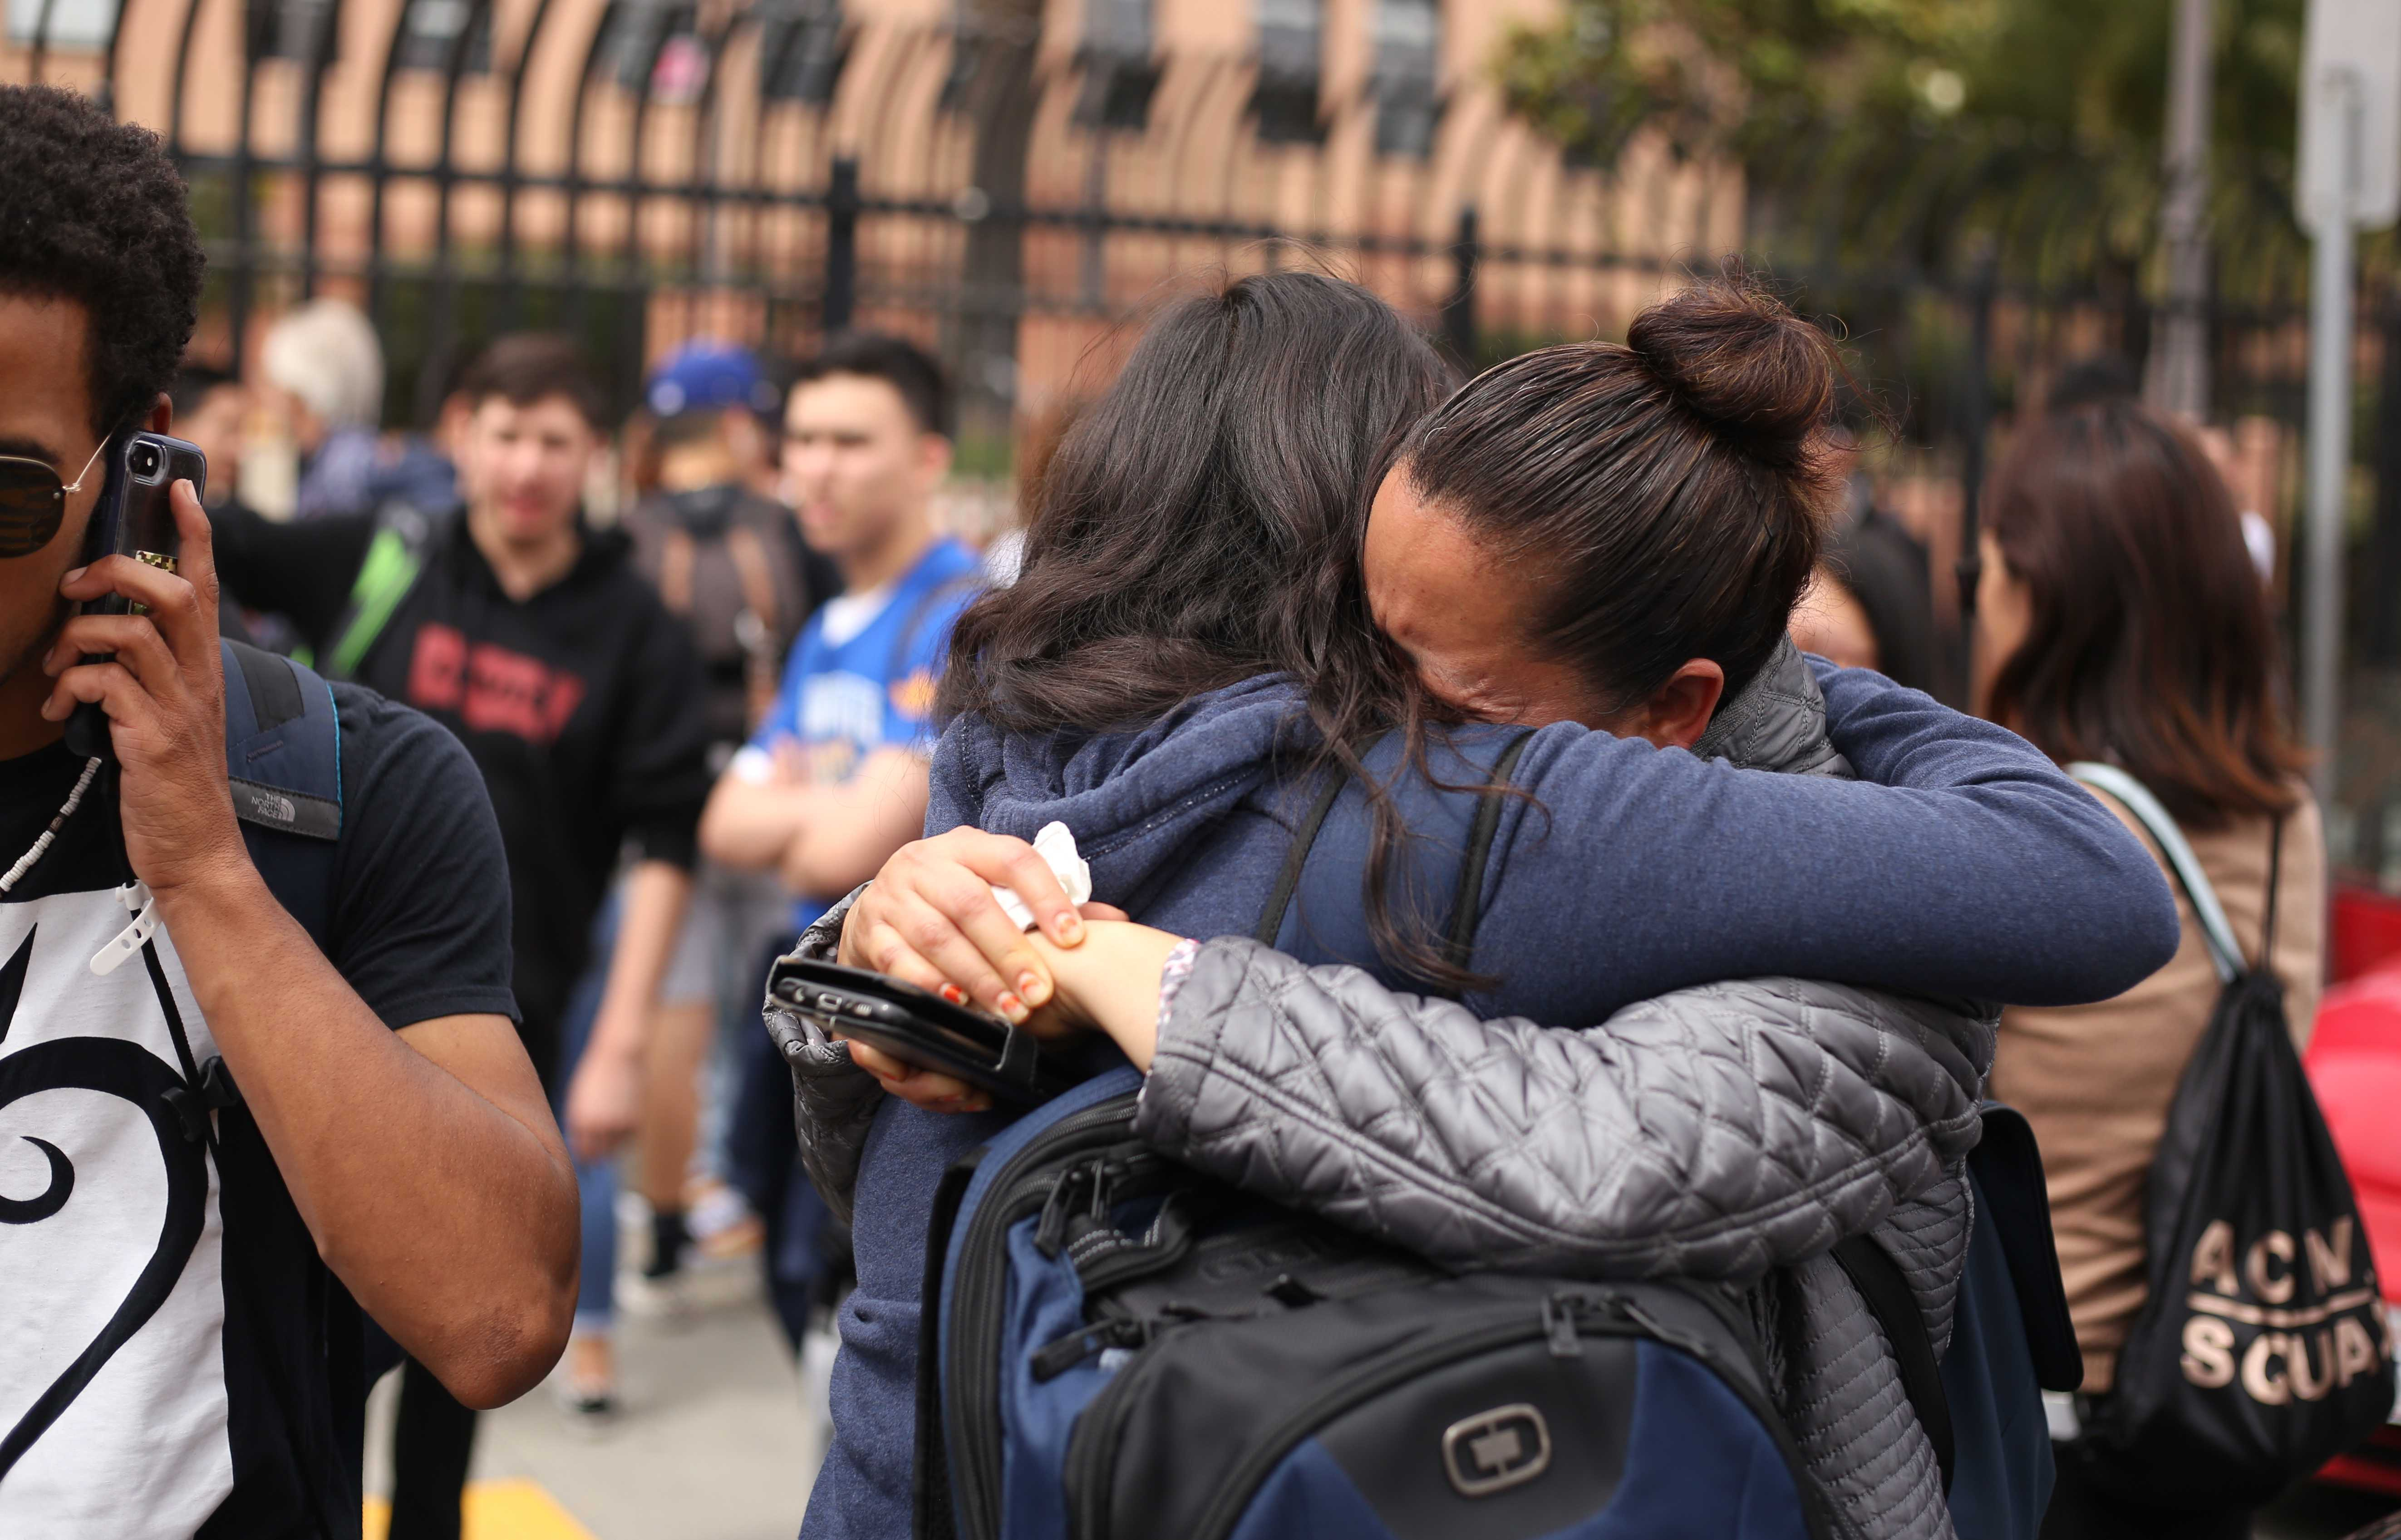 Balboa High School student Carolina Mendiola and her mother Teresa embrace after Carolina was released from the school following a lockdown due to reports of a shooting on campus in San Francisco, Calif., on Thursday, Aug. 30, 2018. (Christian Urrutia/Golden Gate Xpress)